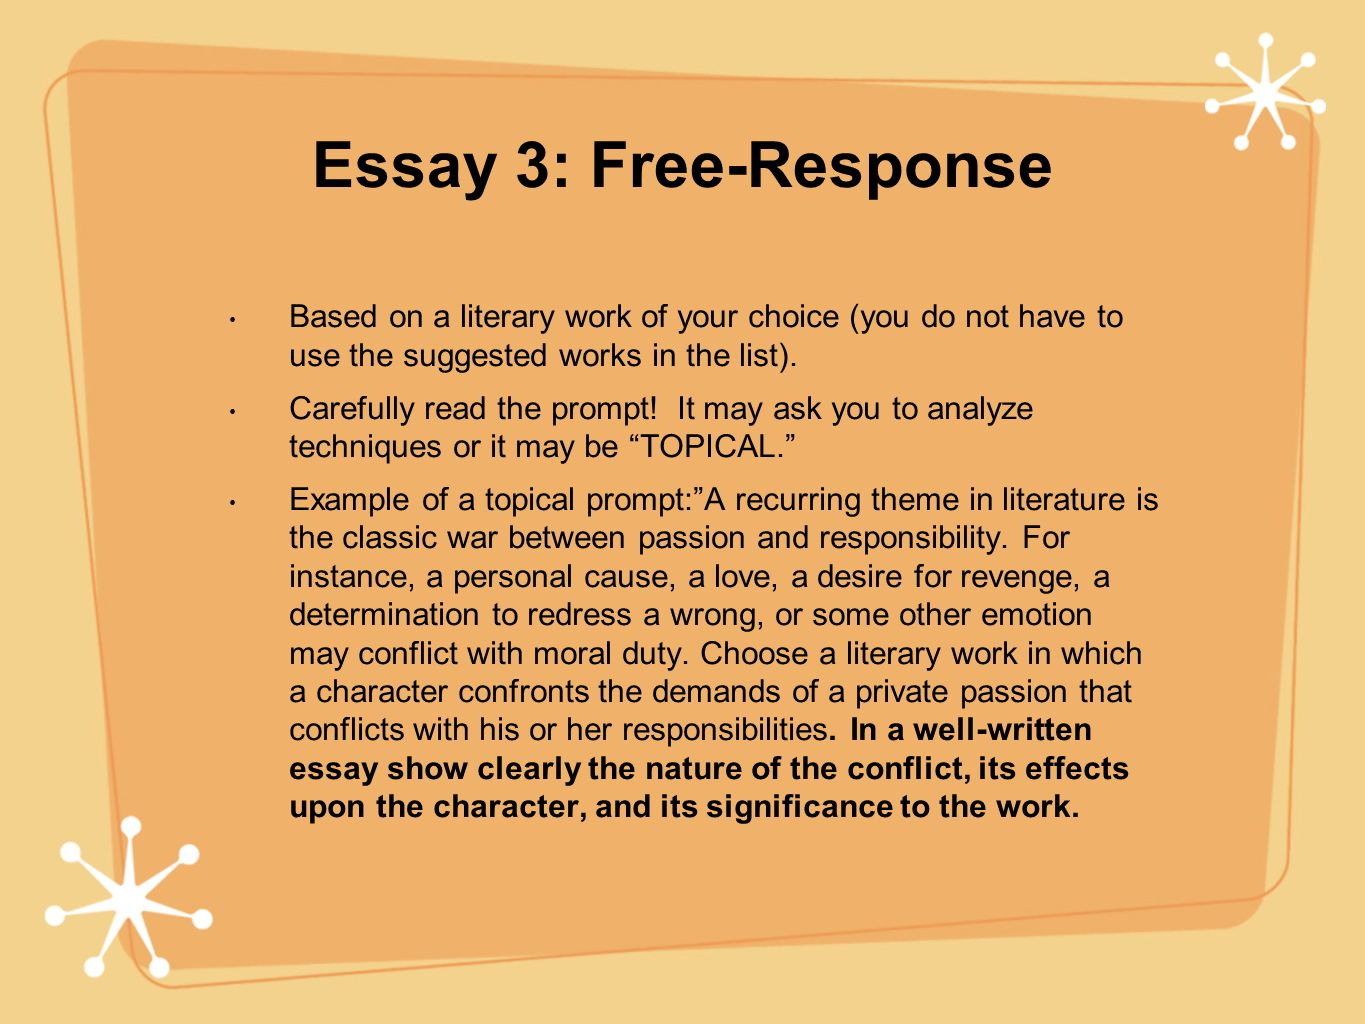 English b1 level essays